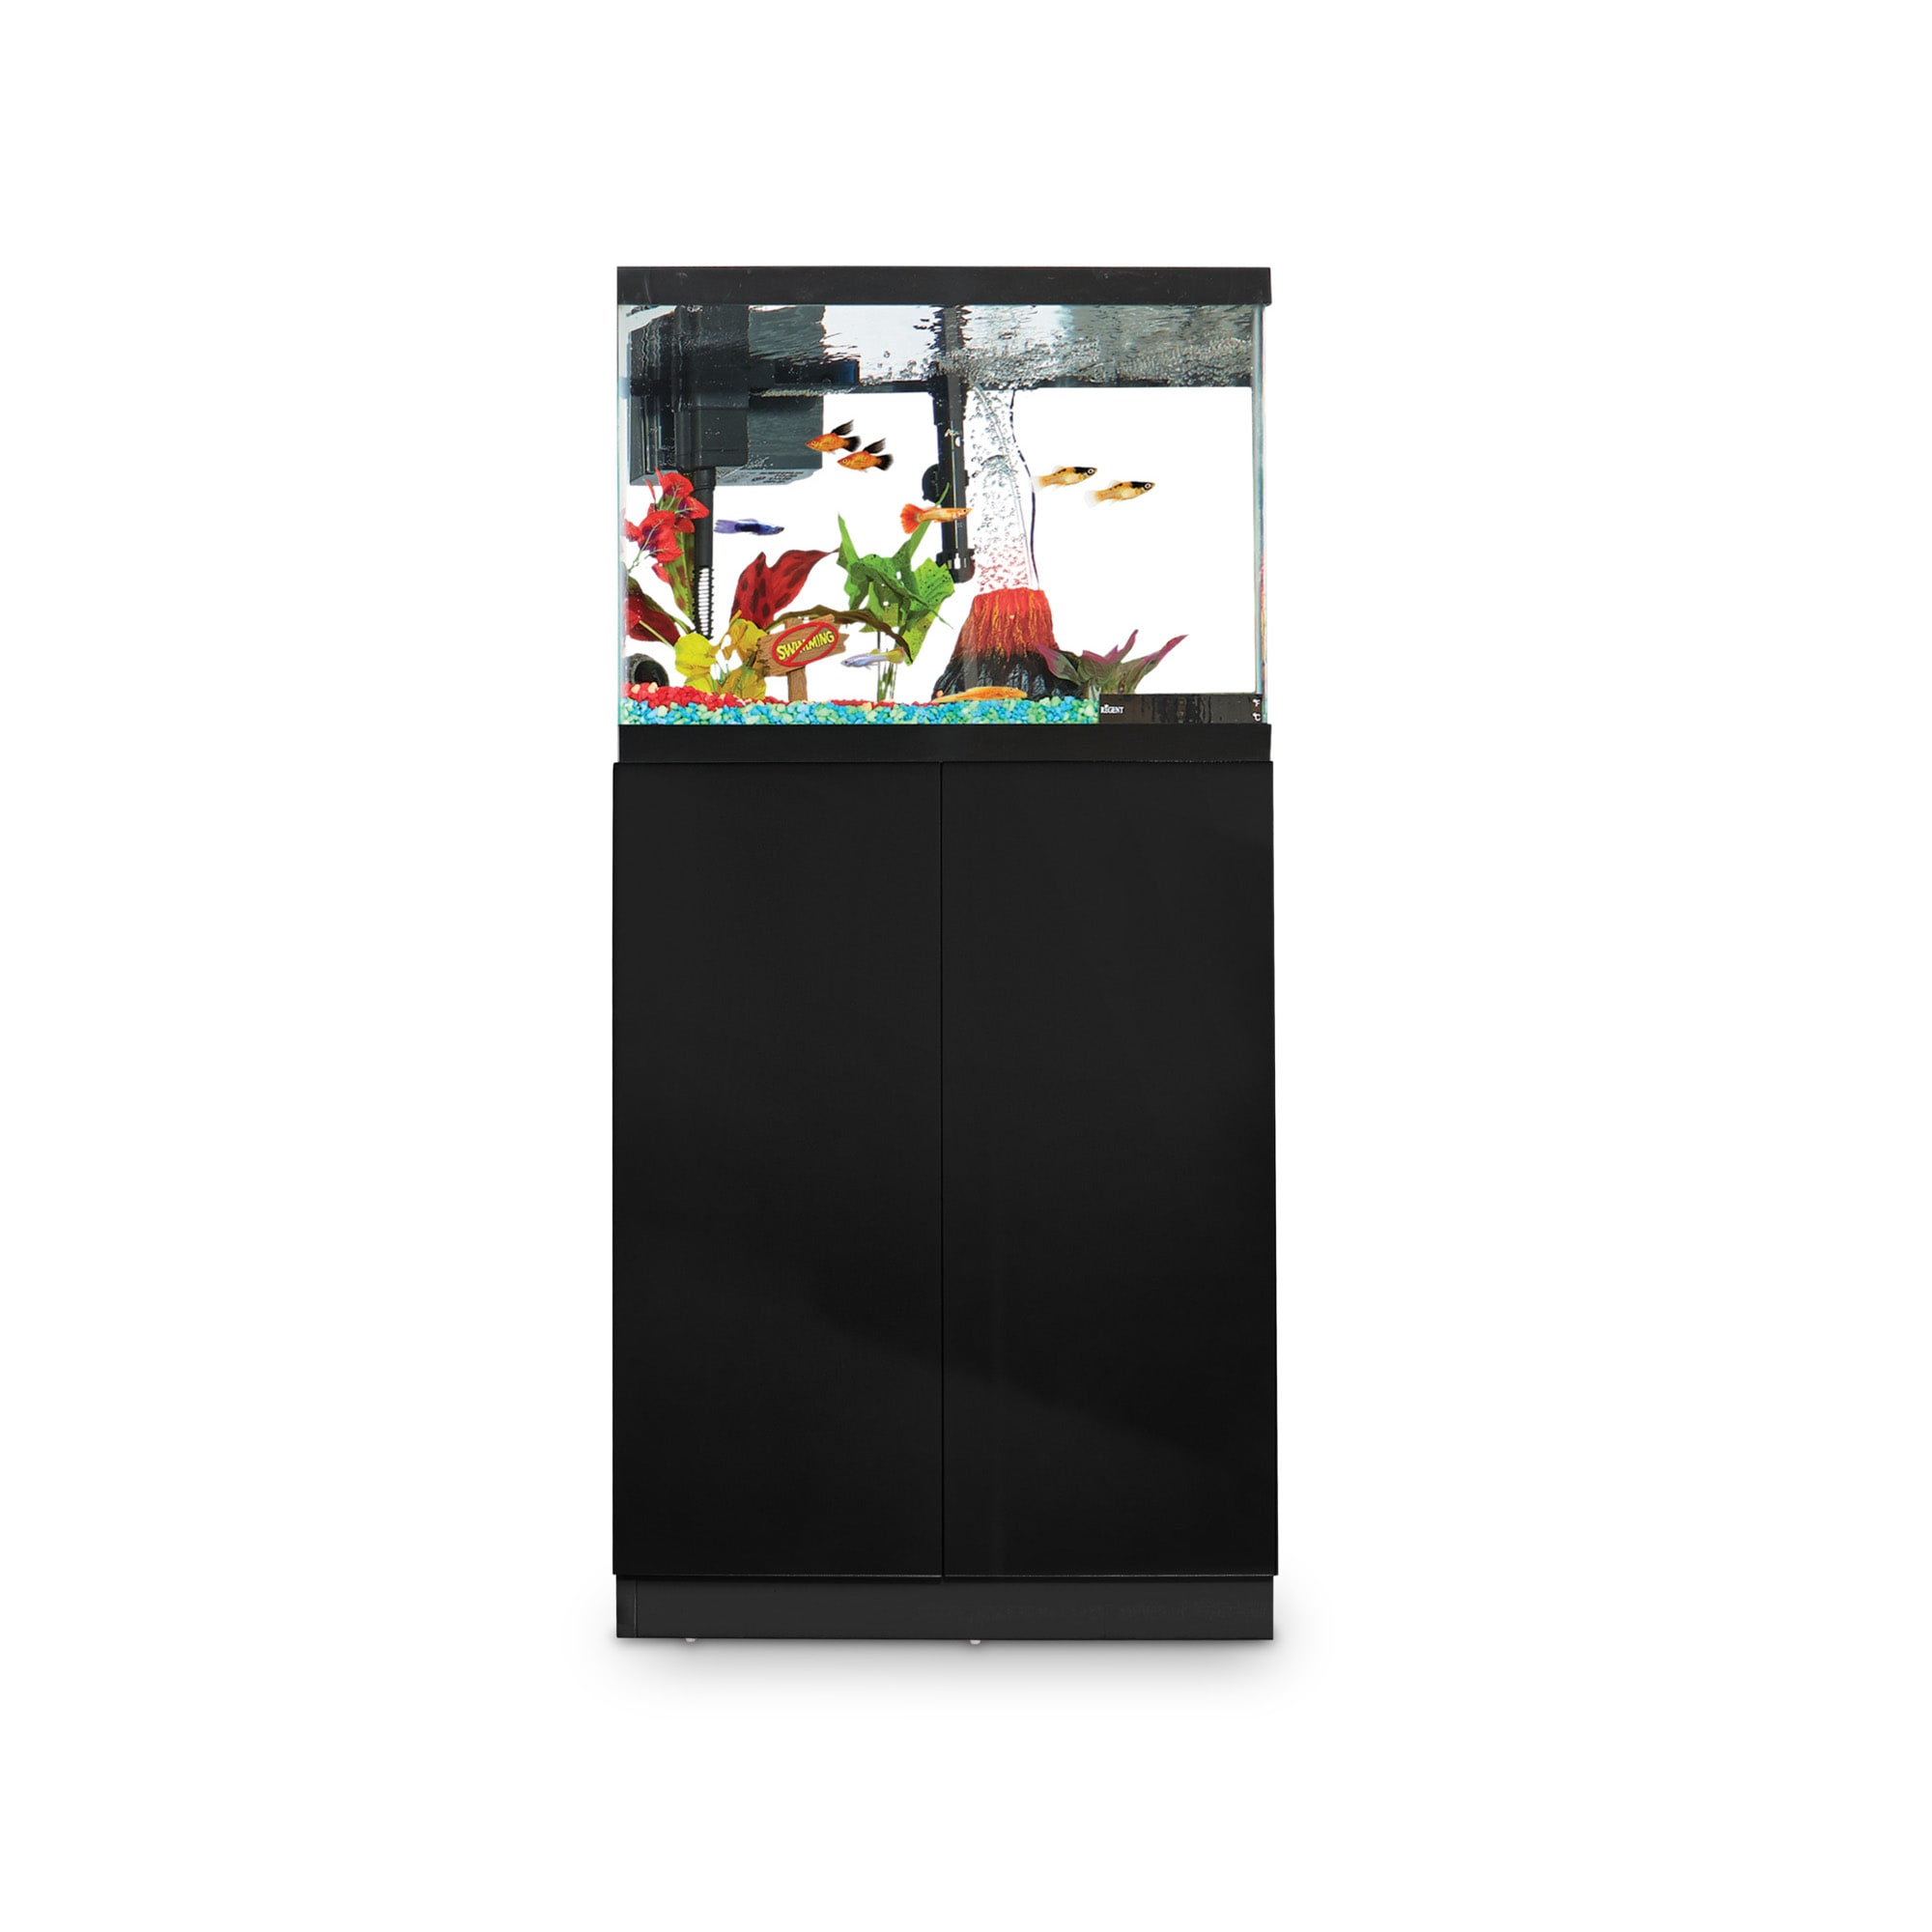 The Imagitarium Black Gloss Fish Tank Stand is a beautiful way to display your aquarium or terrarium. This stylish counter also includes an adjustable shelf and supplies hook so you can easily stow your habitat\\\'s maintenance accessories.